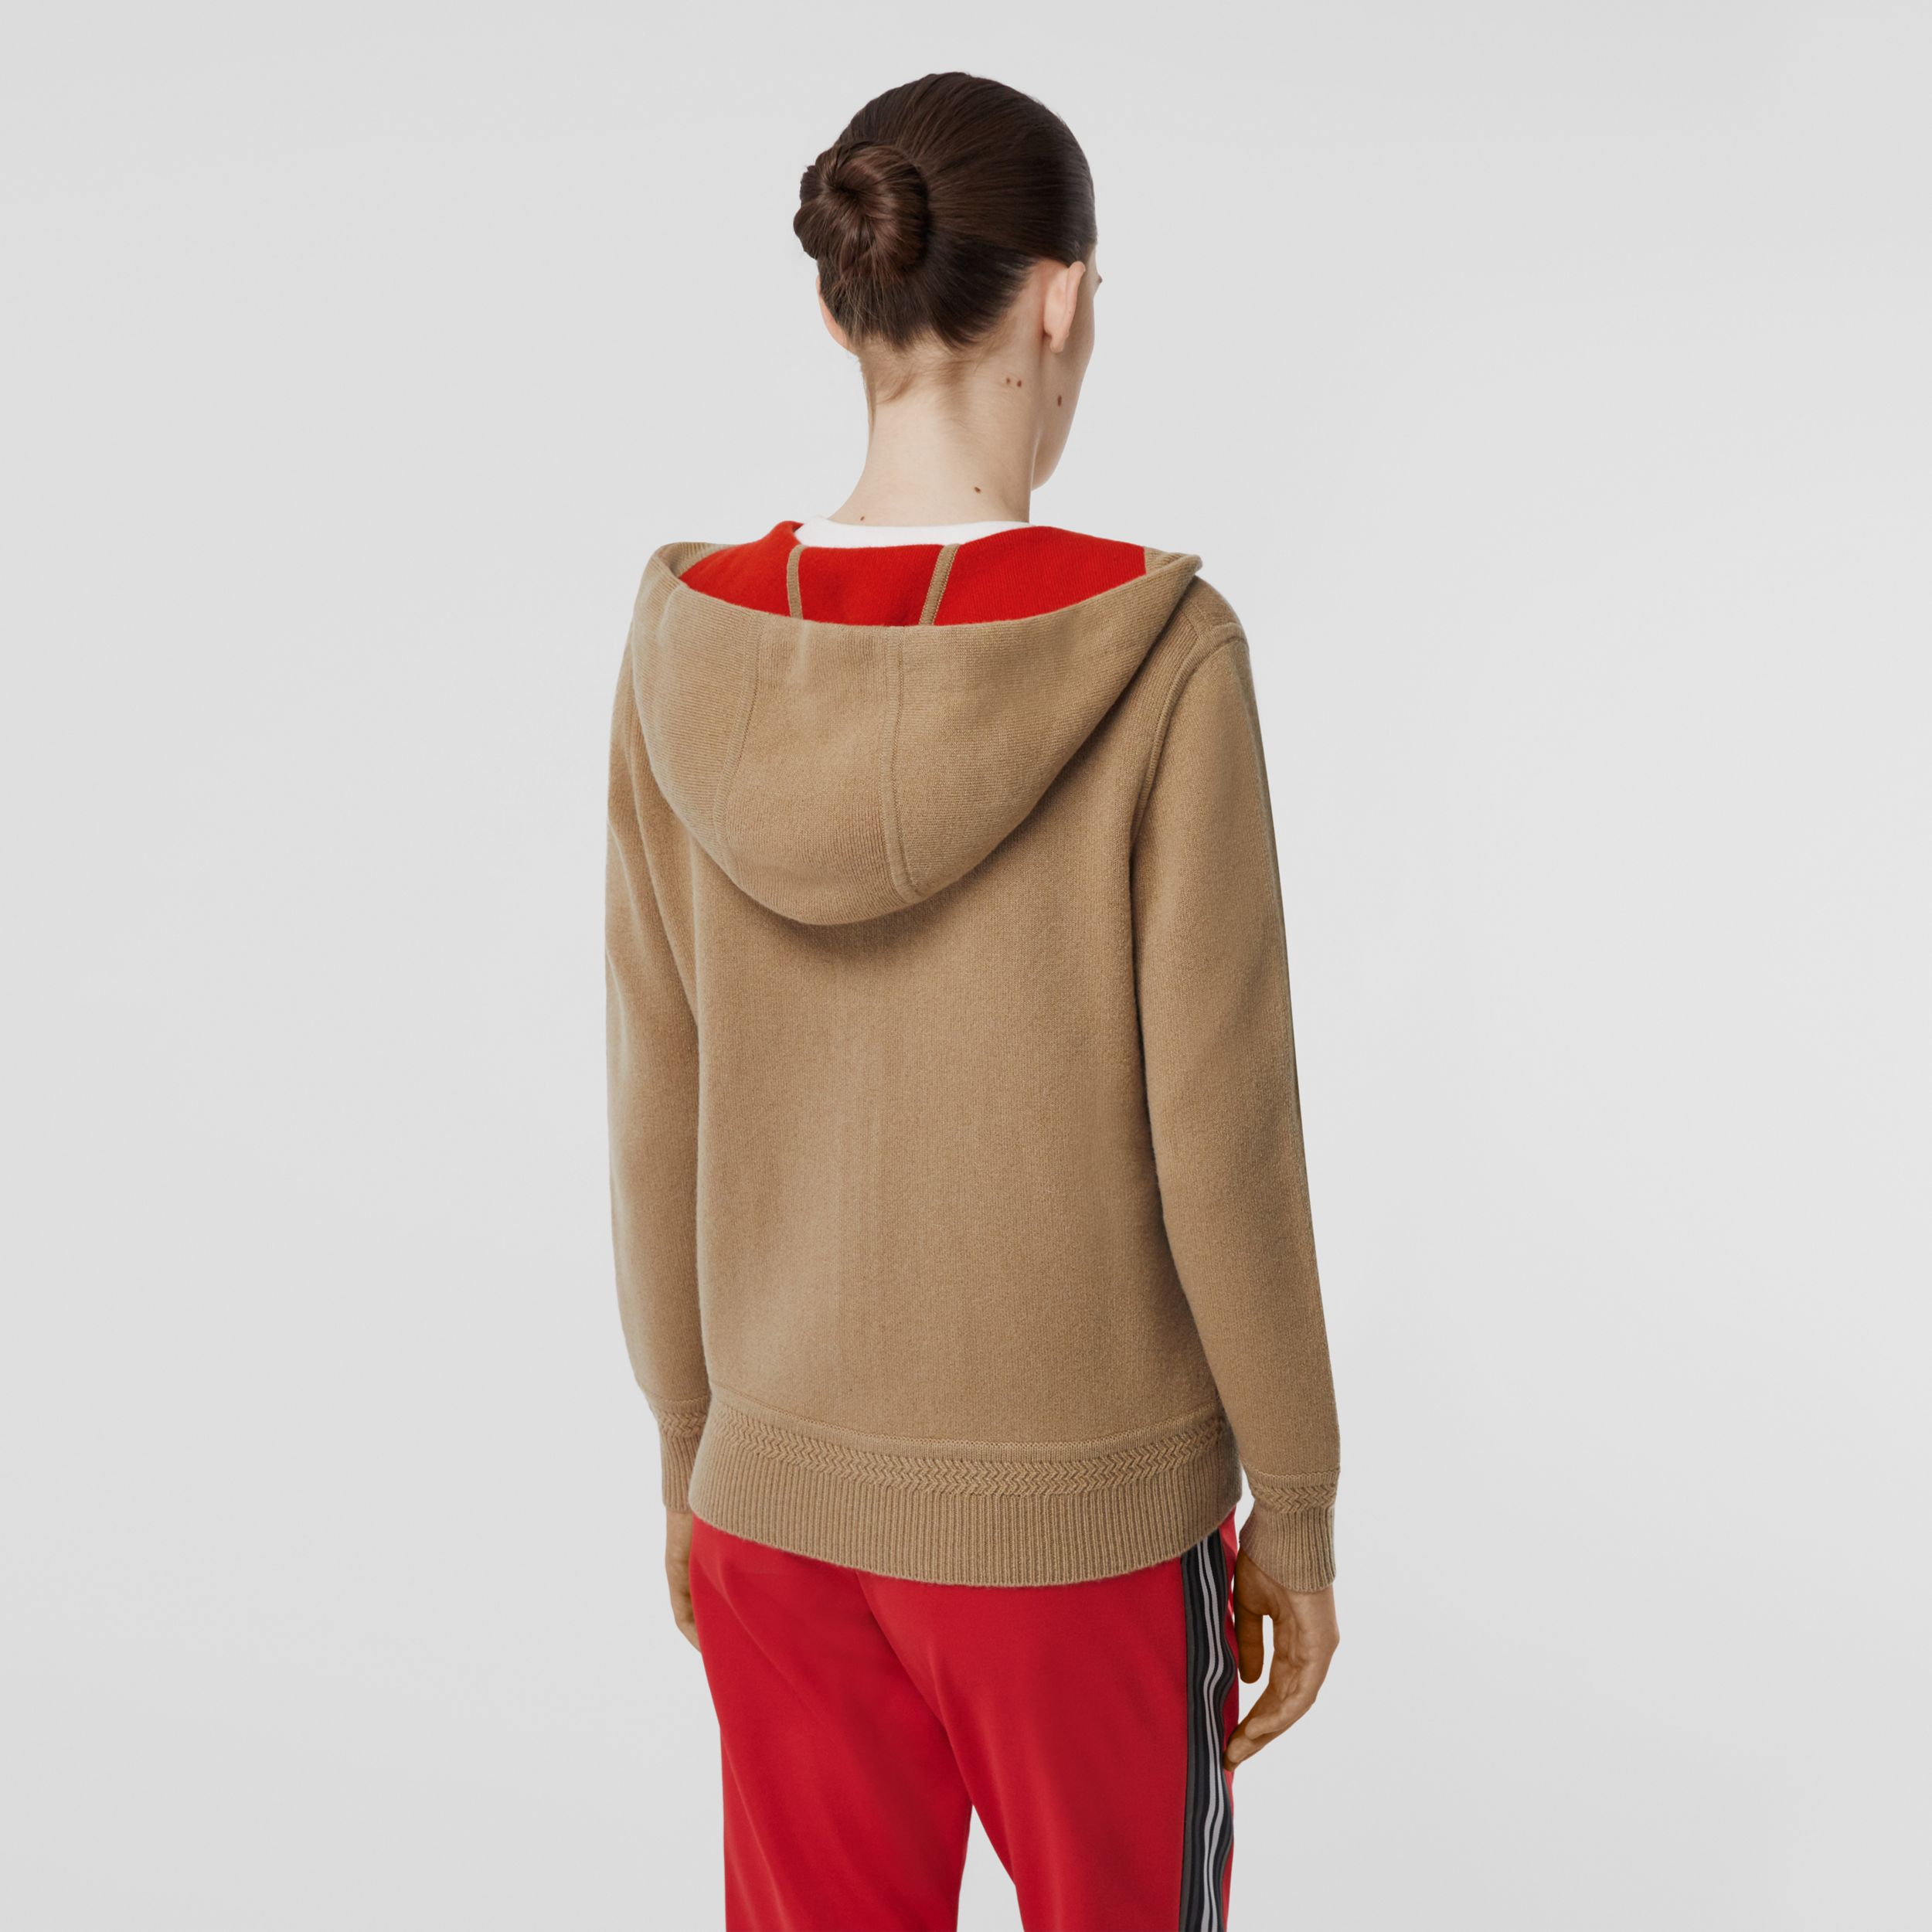 Embroidered Logo Cashmere Hooded Top in Archive Beige - Women | Burberry - 3